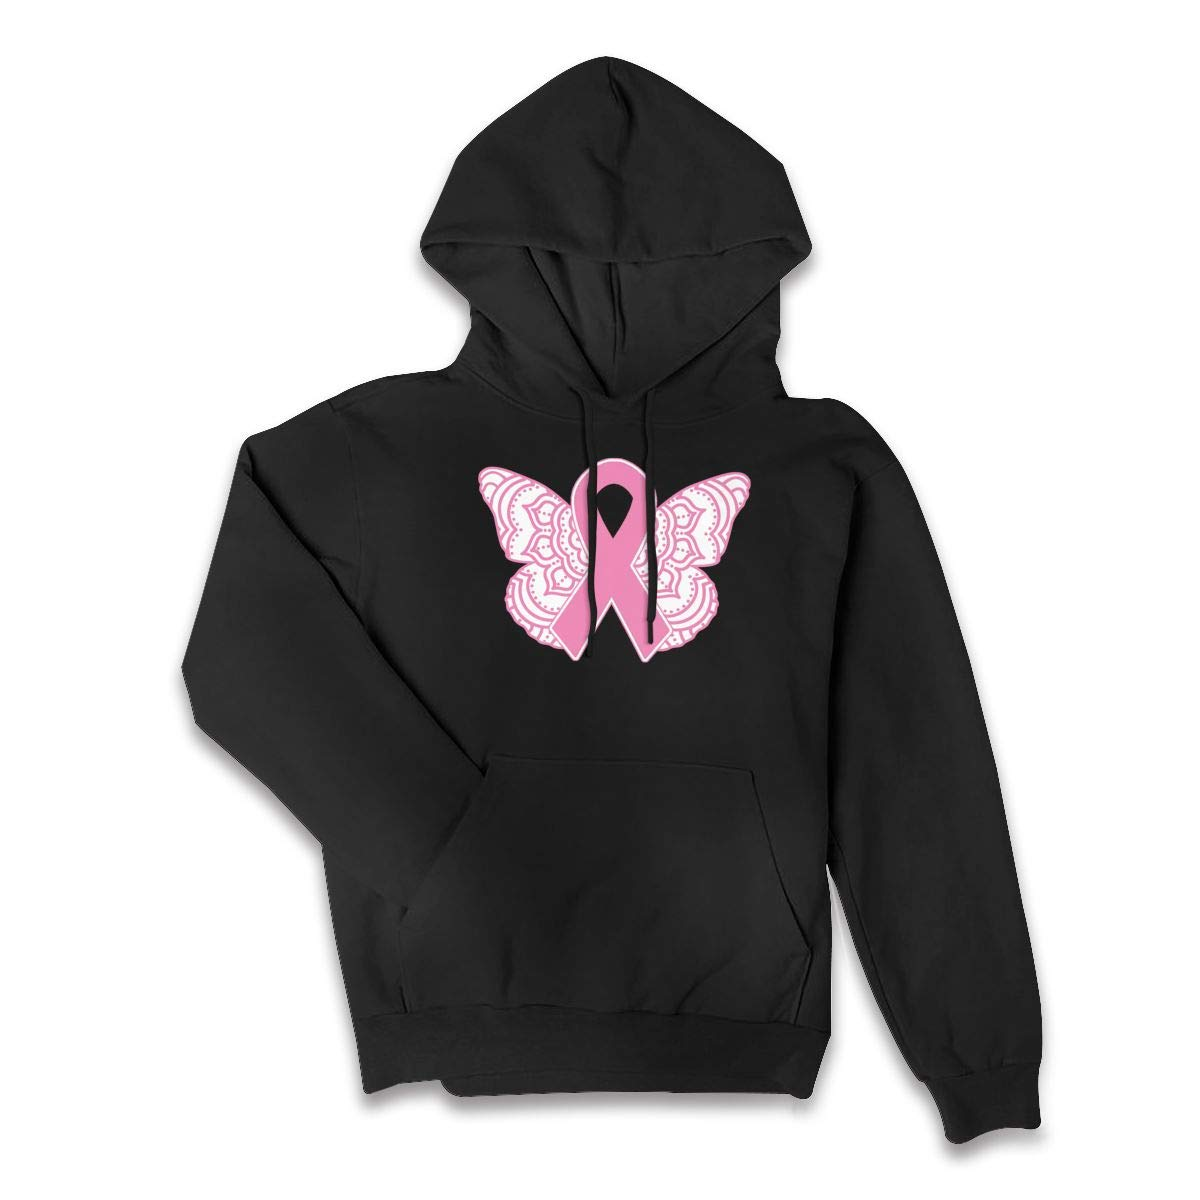 Breast Cancer Awareness Ribbon Butterfly Ladies Fashion Pullover Hoodie Sweatshirt with Pockets S-2XL